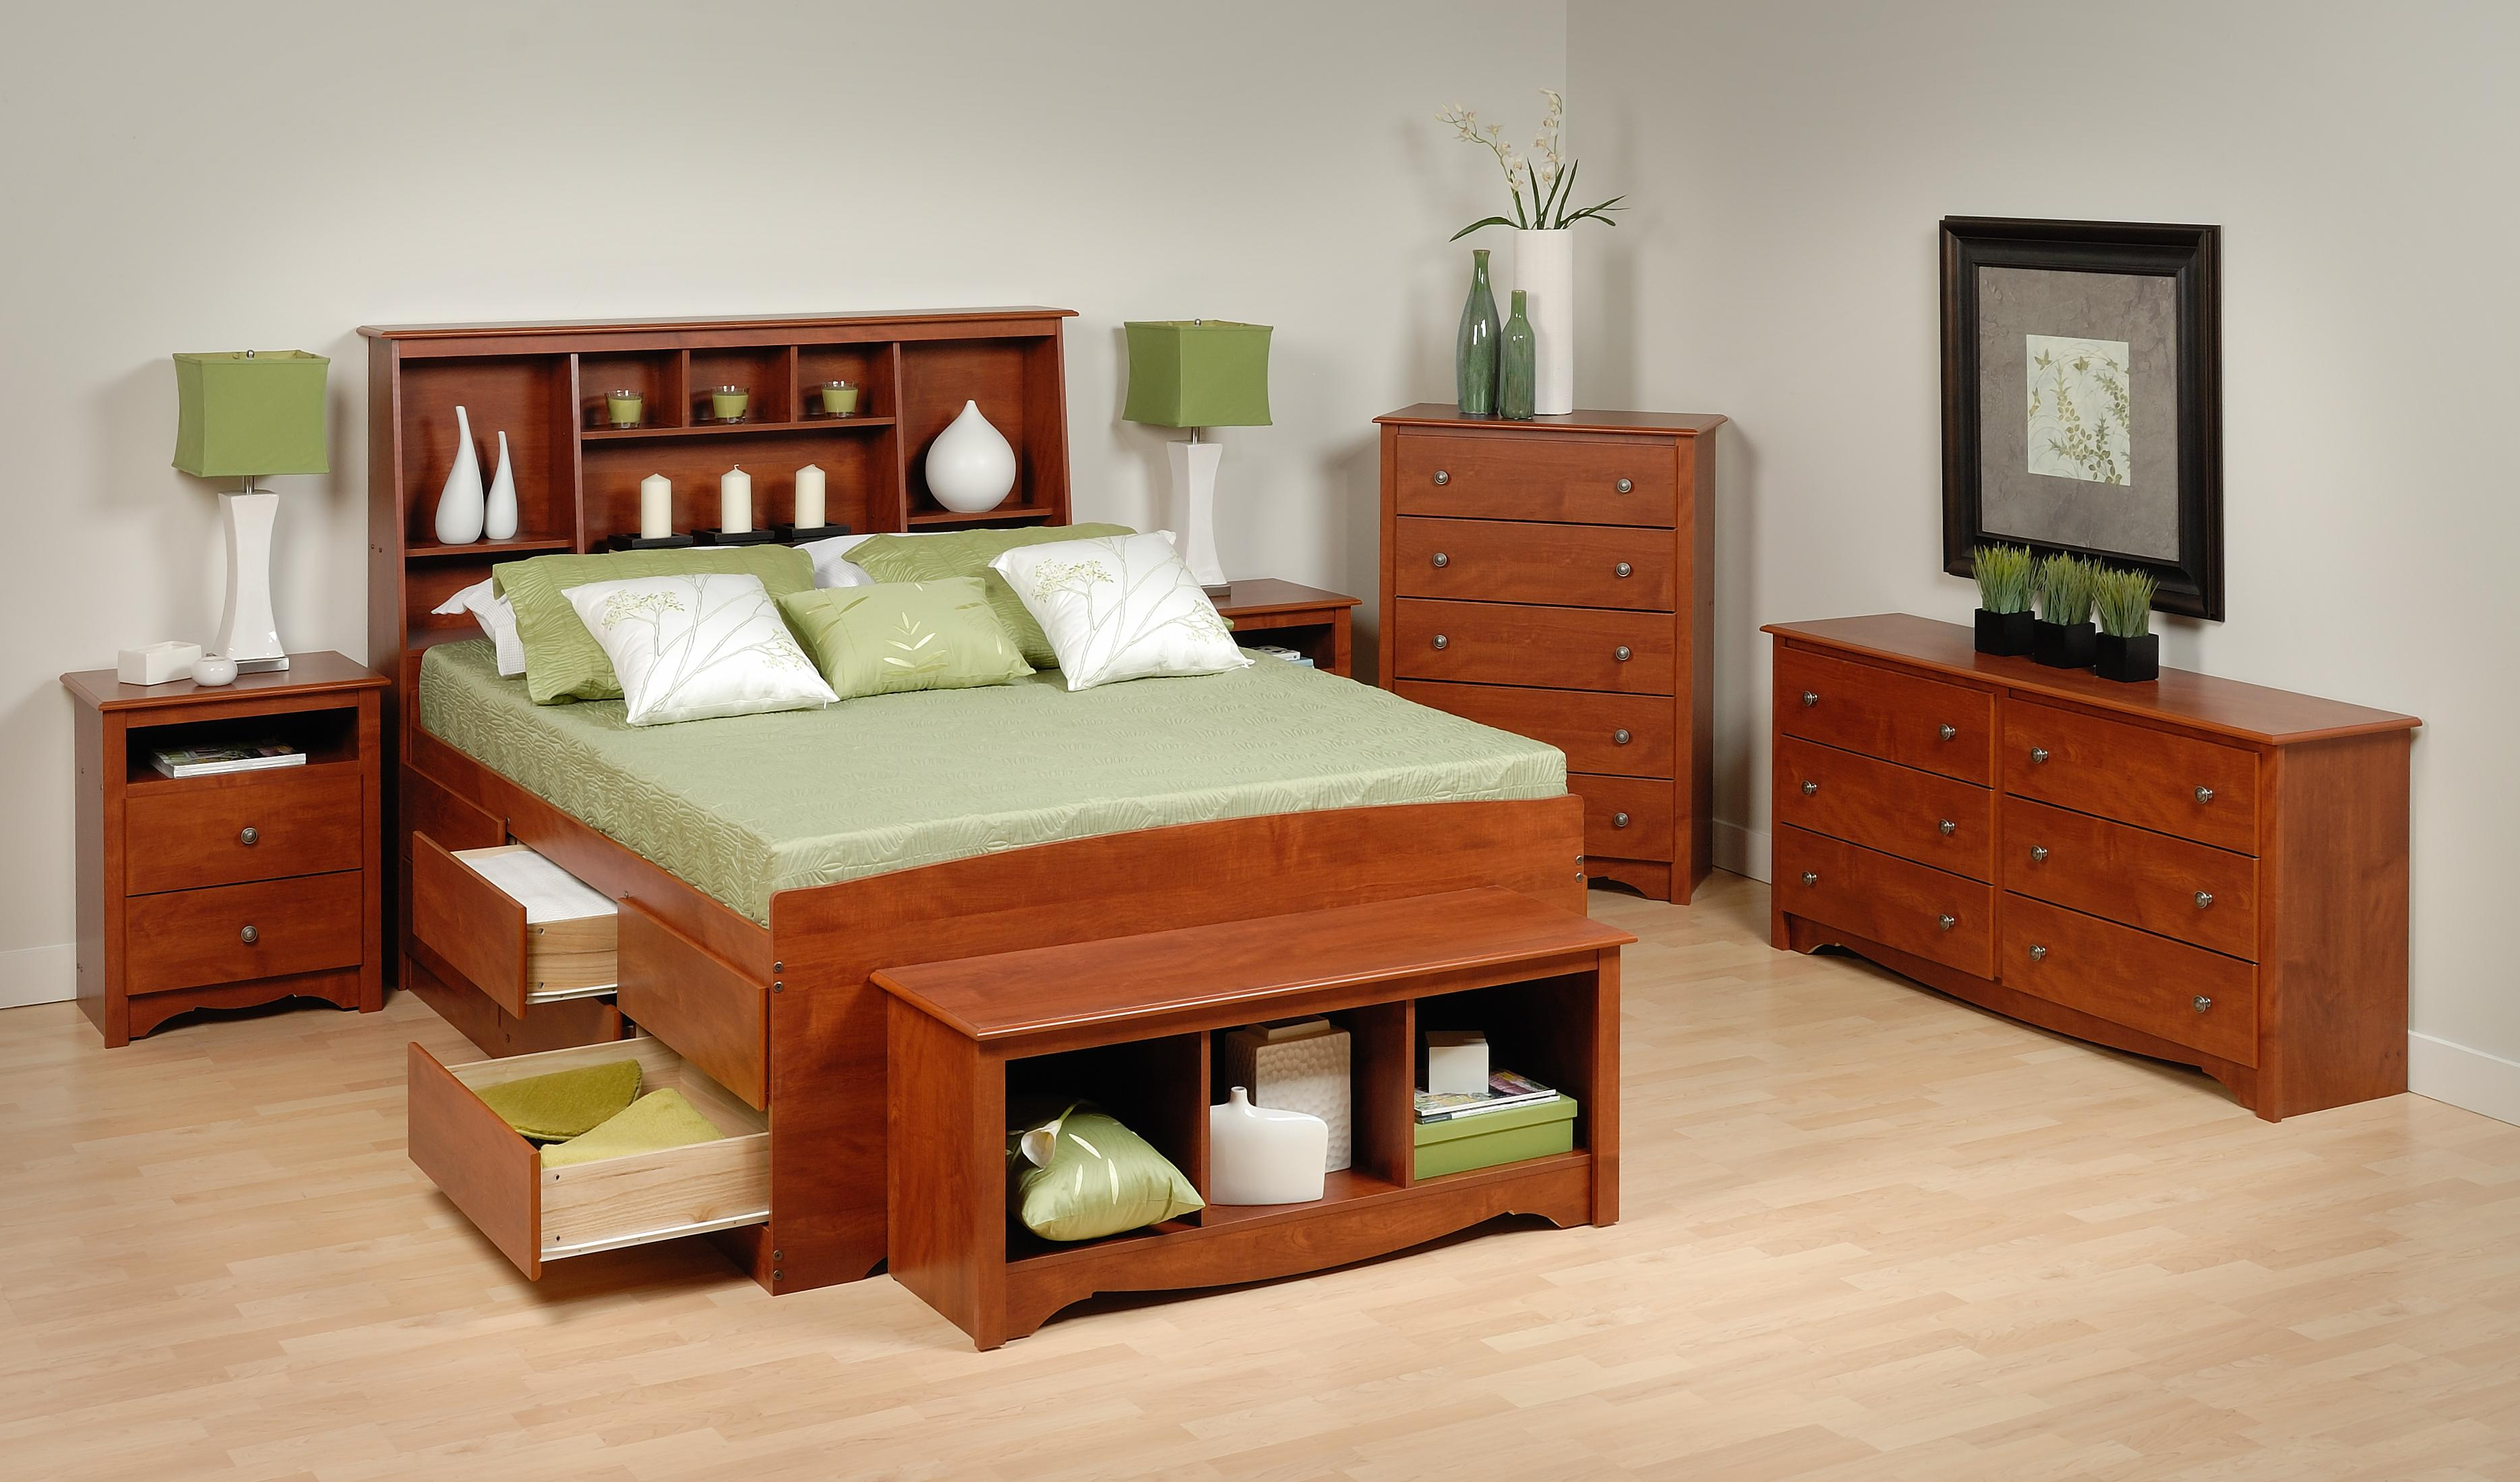 Bed furniture with drawers - From The Manufacturer